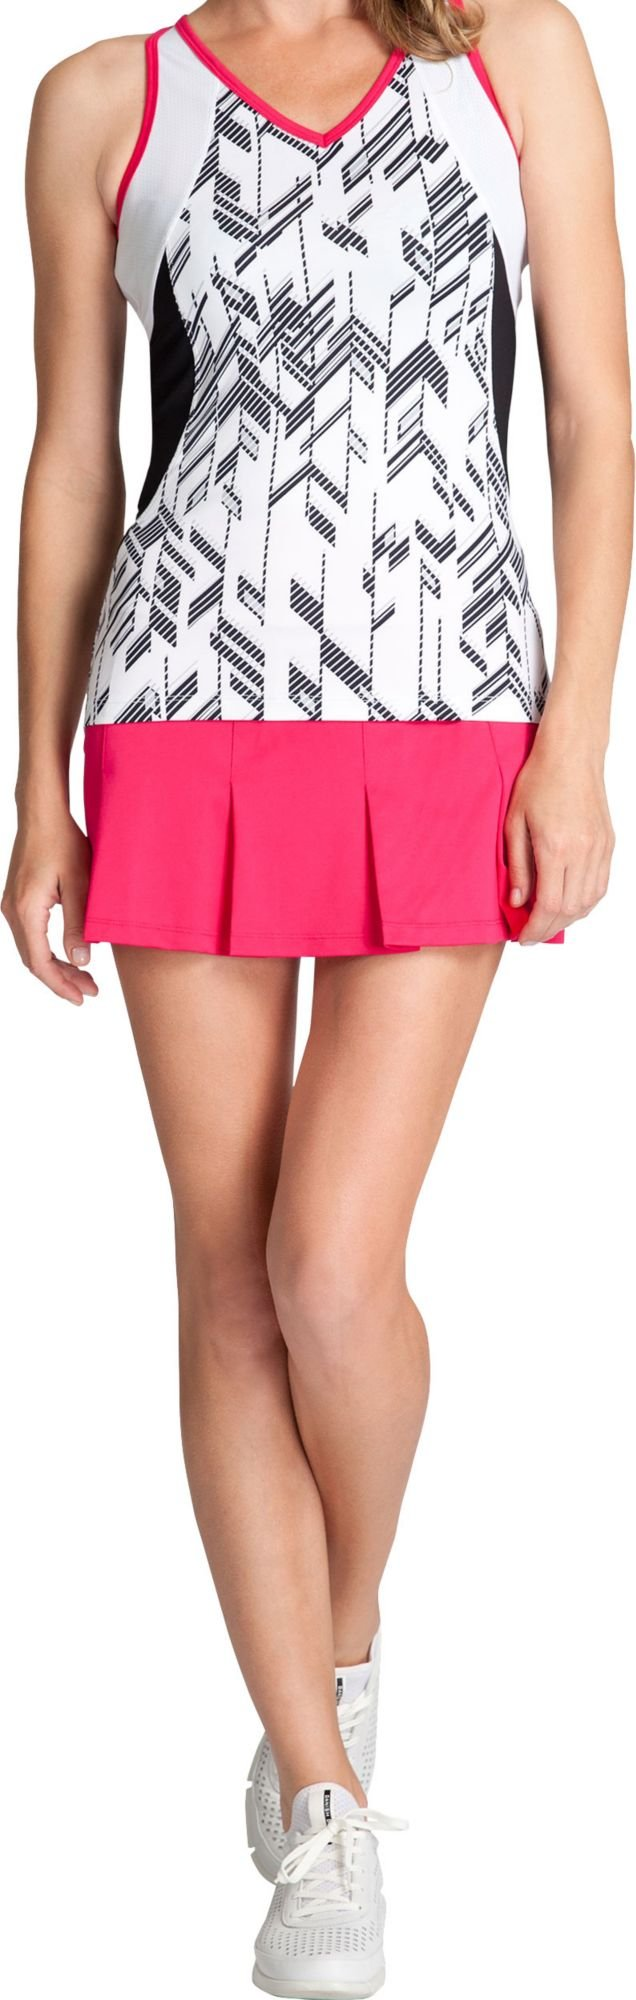 Tail Women's Judy V-Neck Top (Grey/White/Pink, XS)